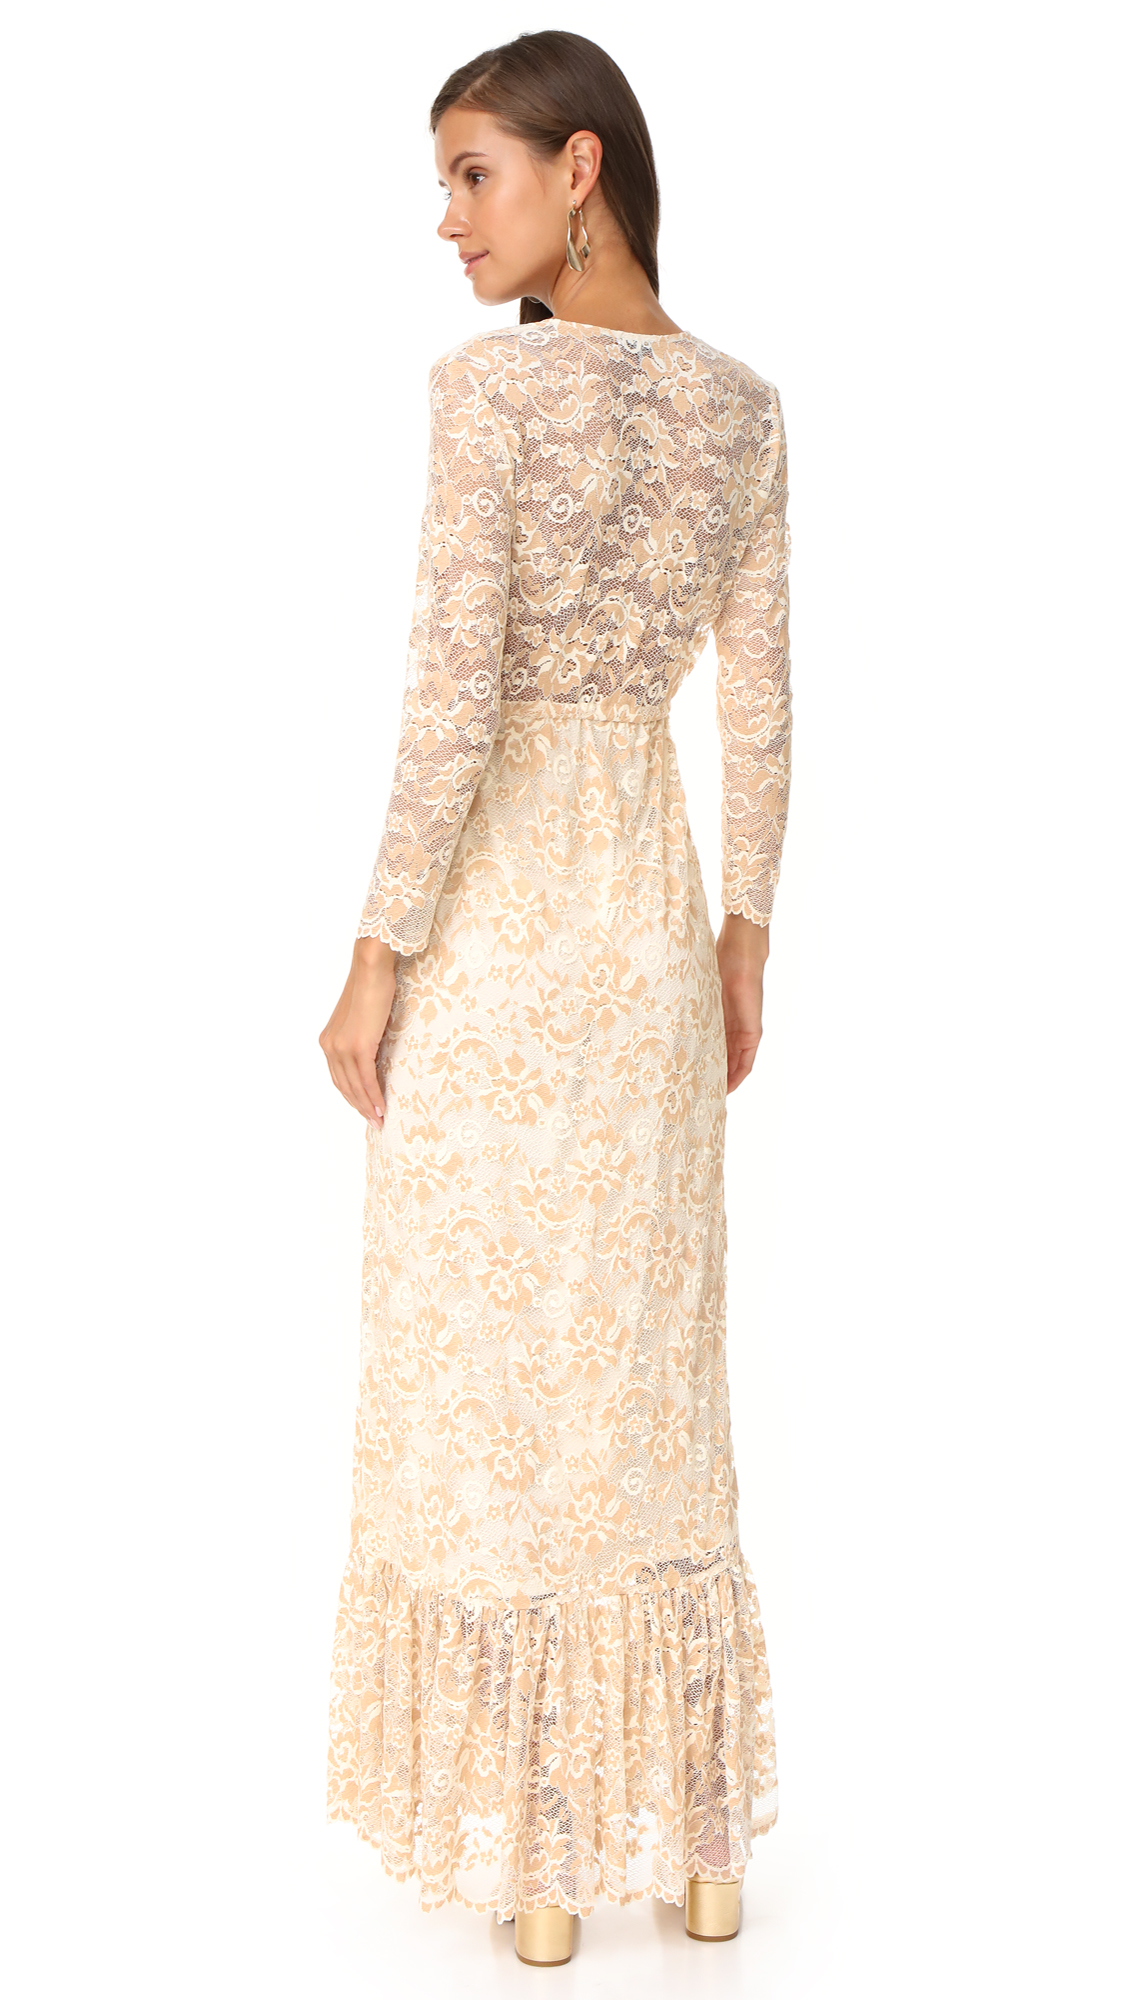 0096a009 GANNI Flynn Lace Dress | SHOPBOP